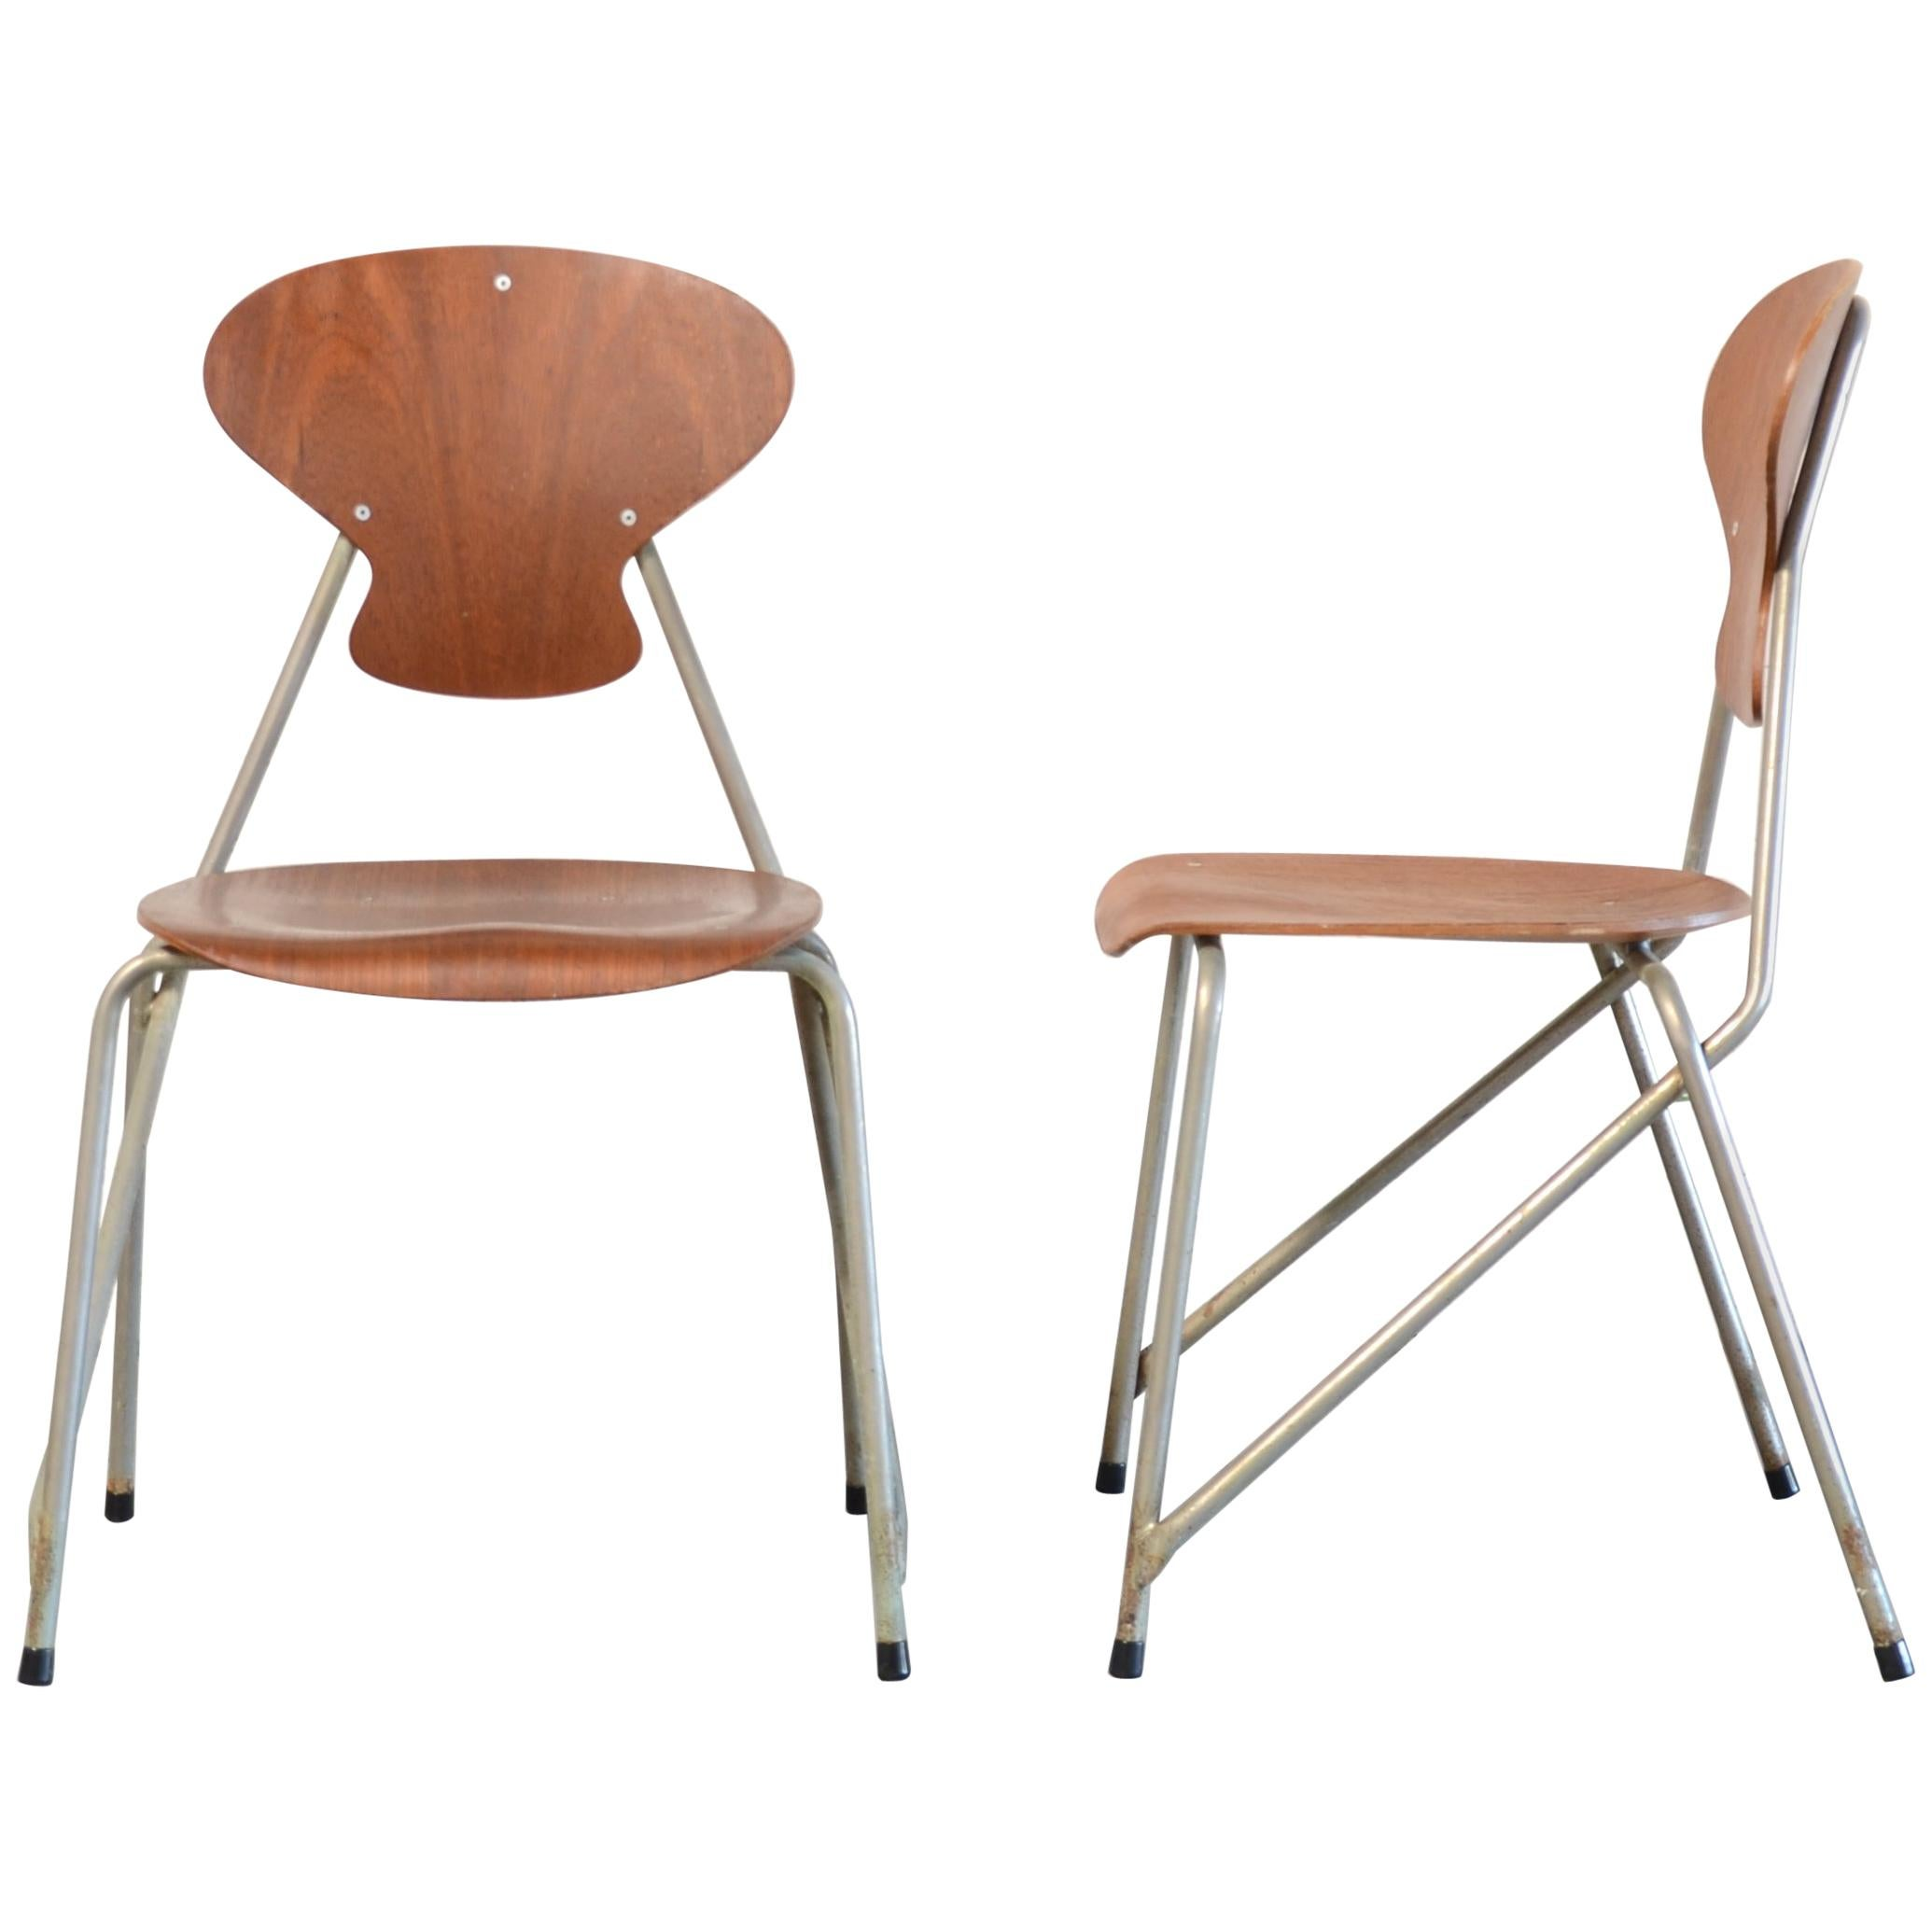 Steen Eiler Rasmussen & Kai Lyngfeldt Larsen Pair of Chairs for Danbork, 1954